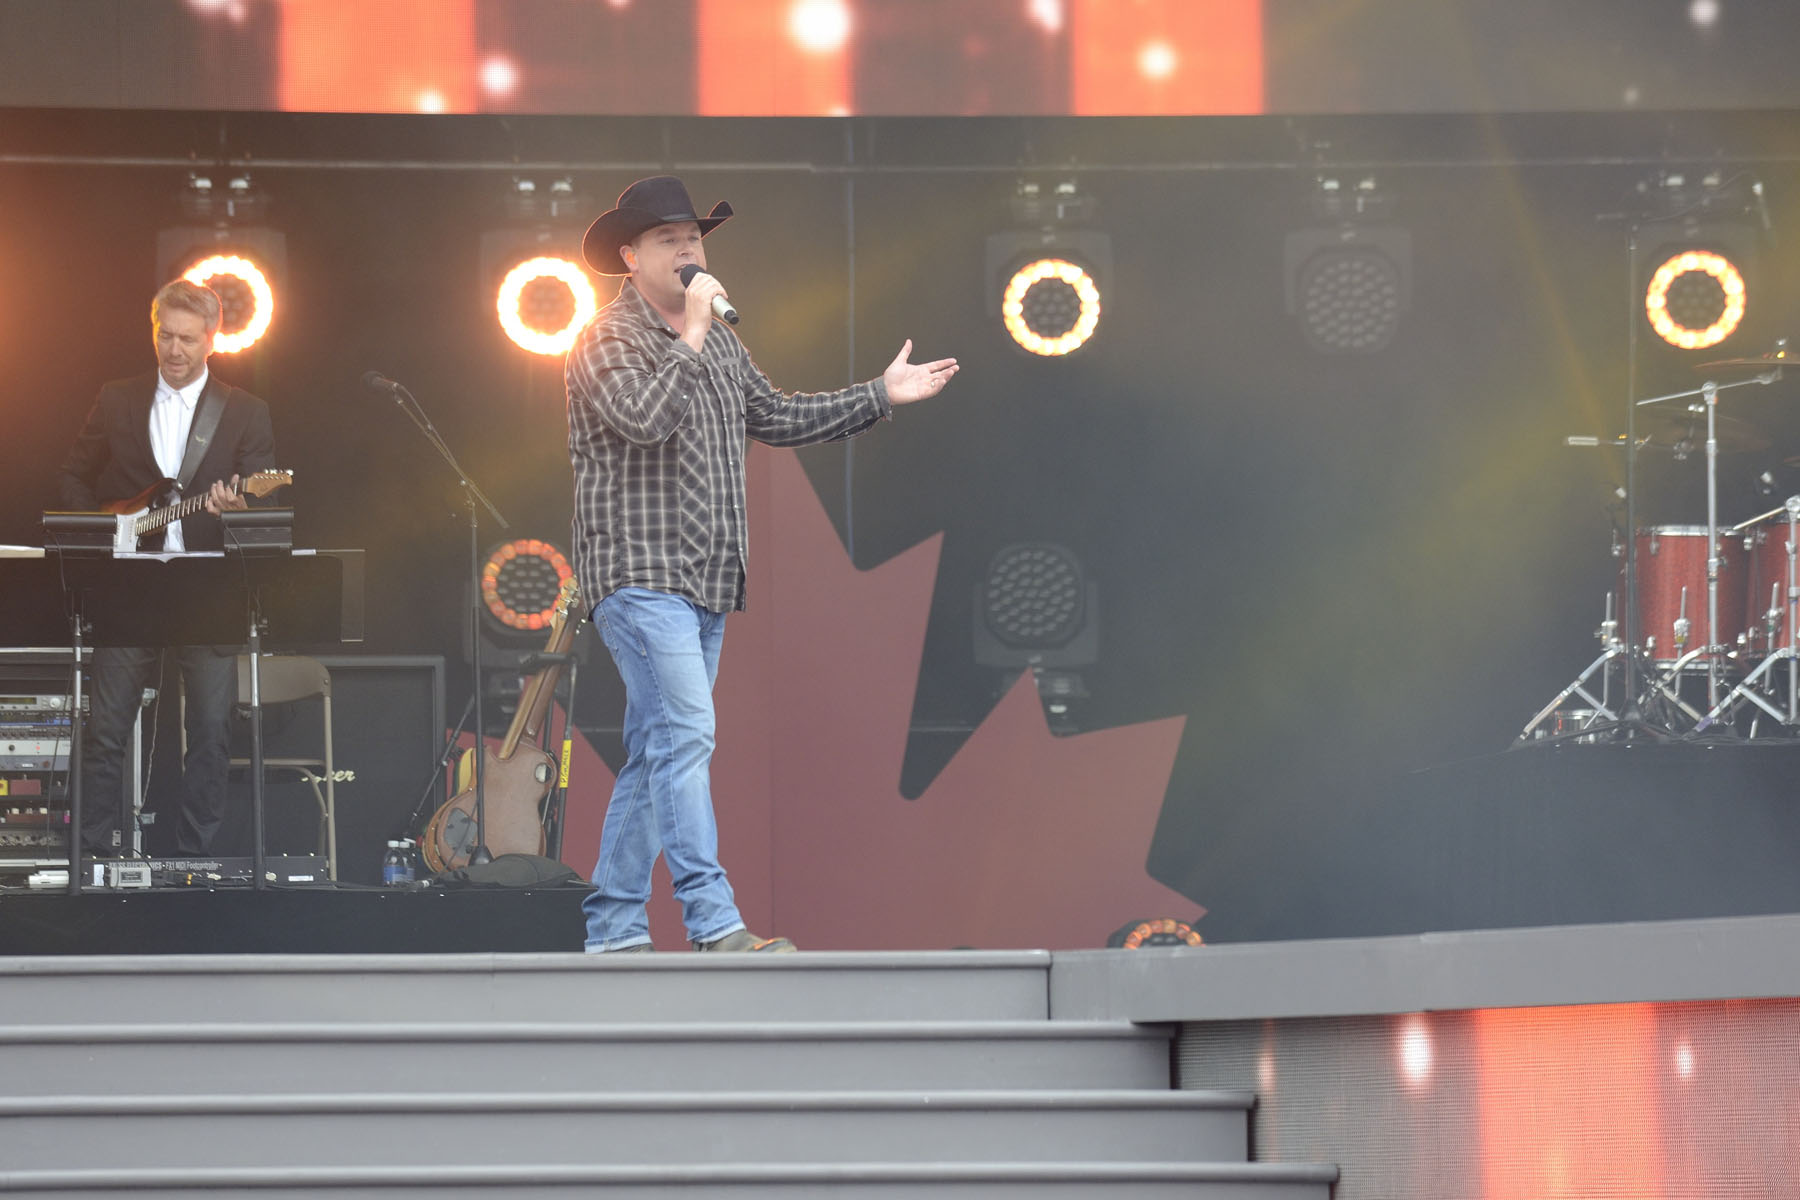 Mr. Gord Bamford performed on stage.